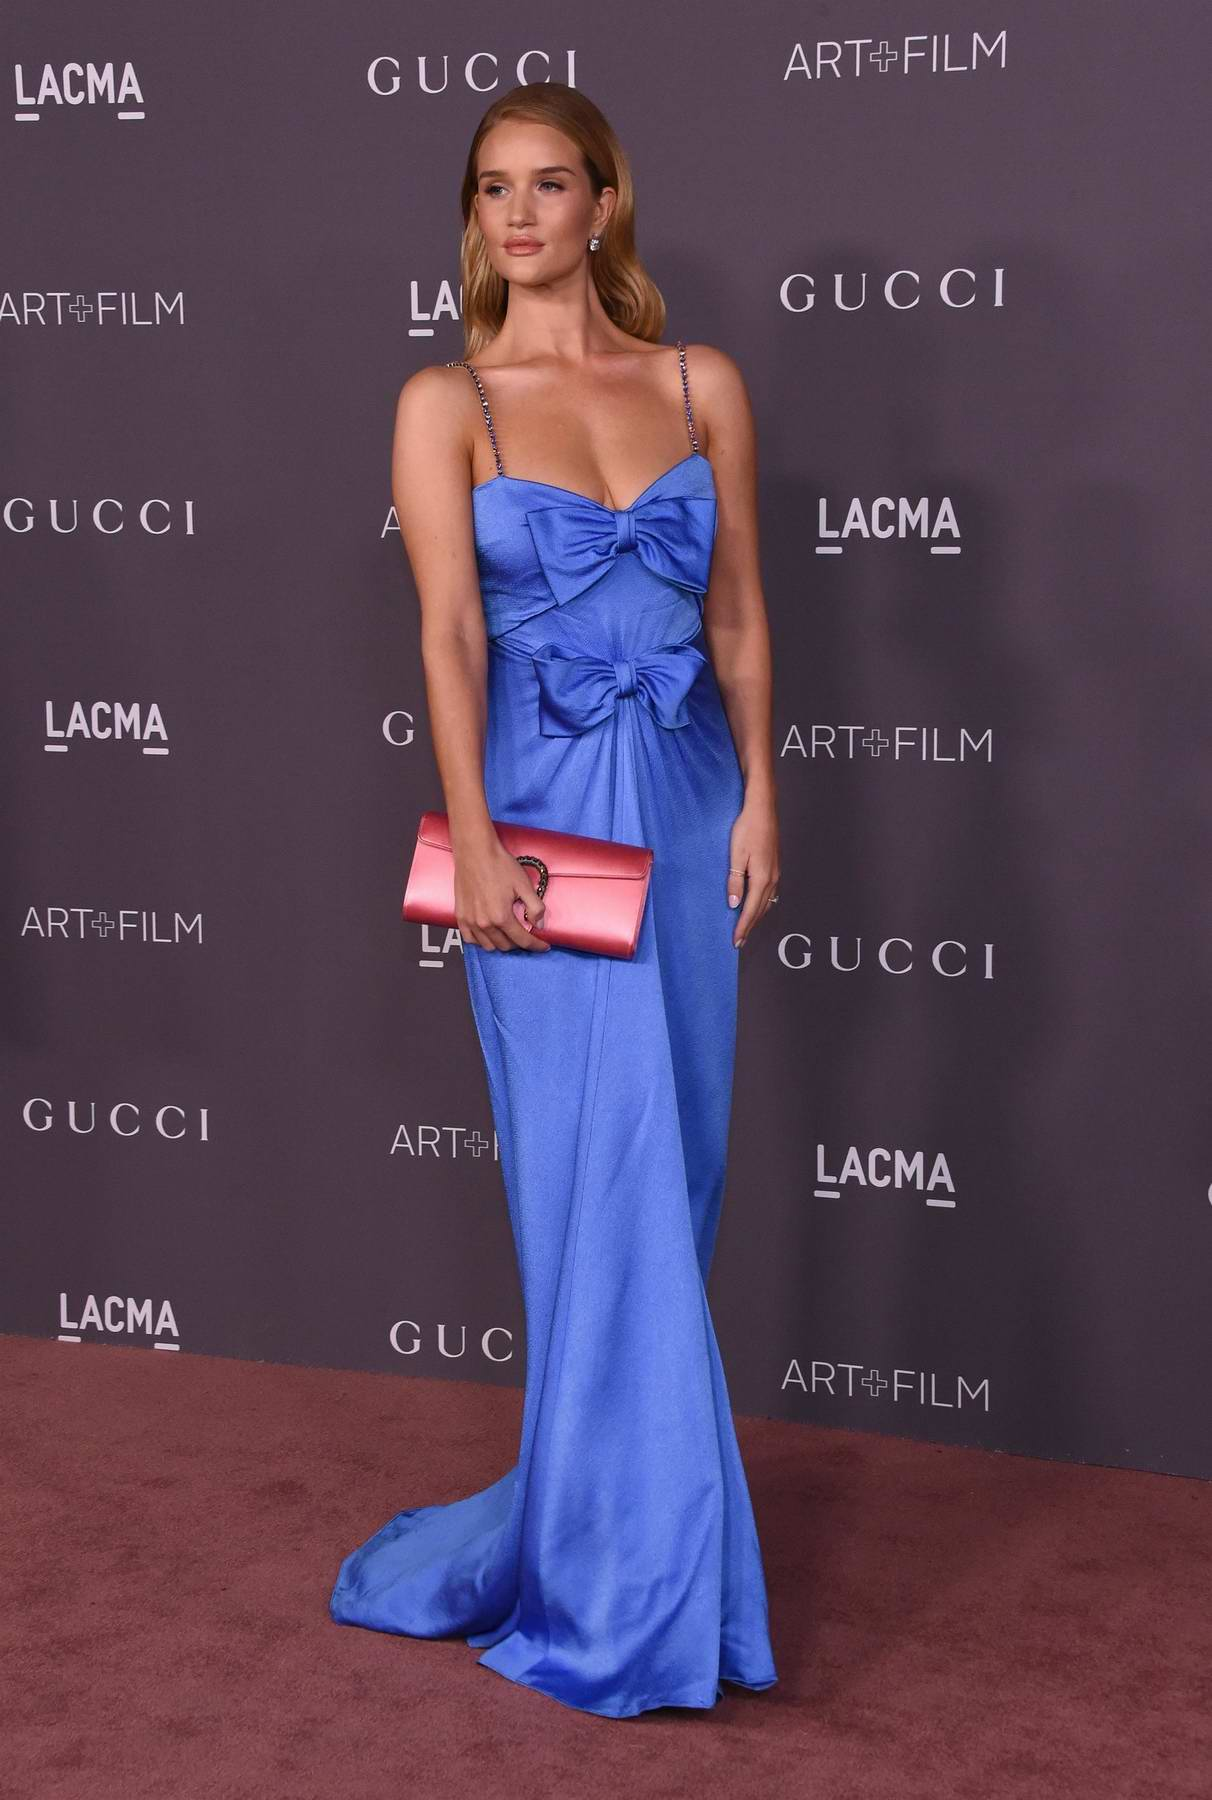 Rosie Huntington-Whiteley at the LACMA Art and Film gala in Los Angeles